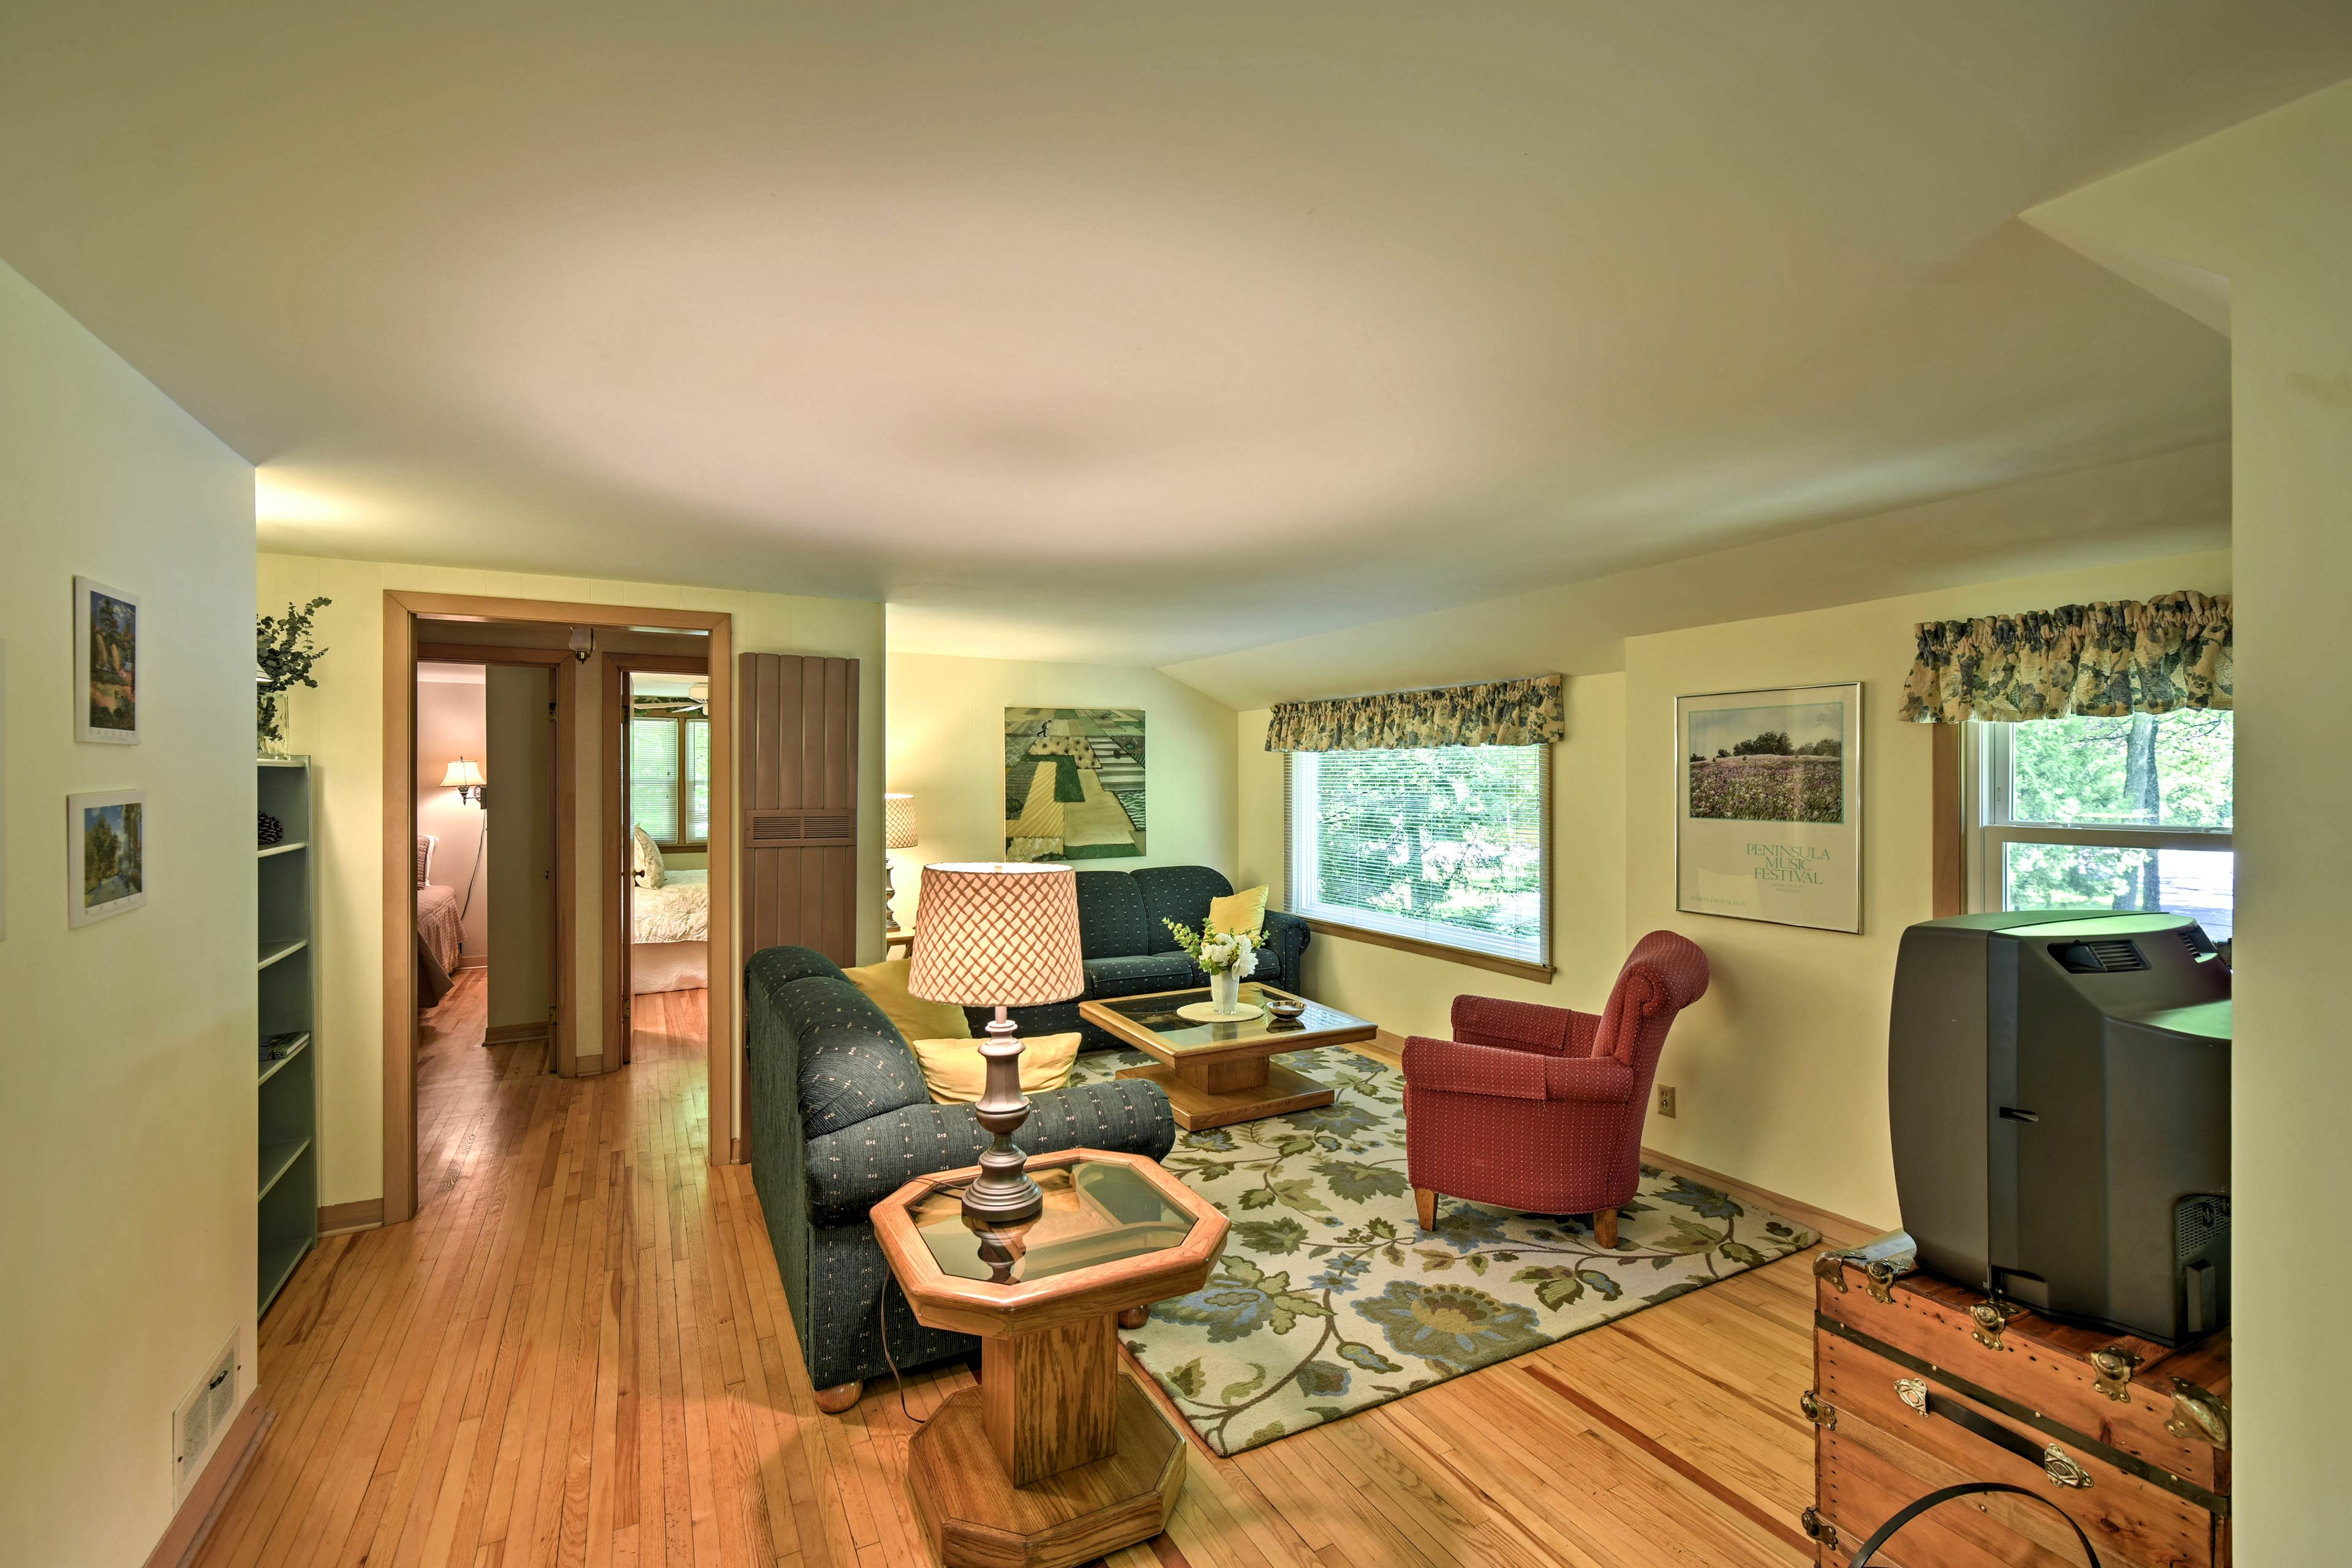 This unit was recently refurbished with the traveler's comfort in mind.